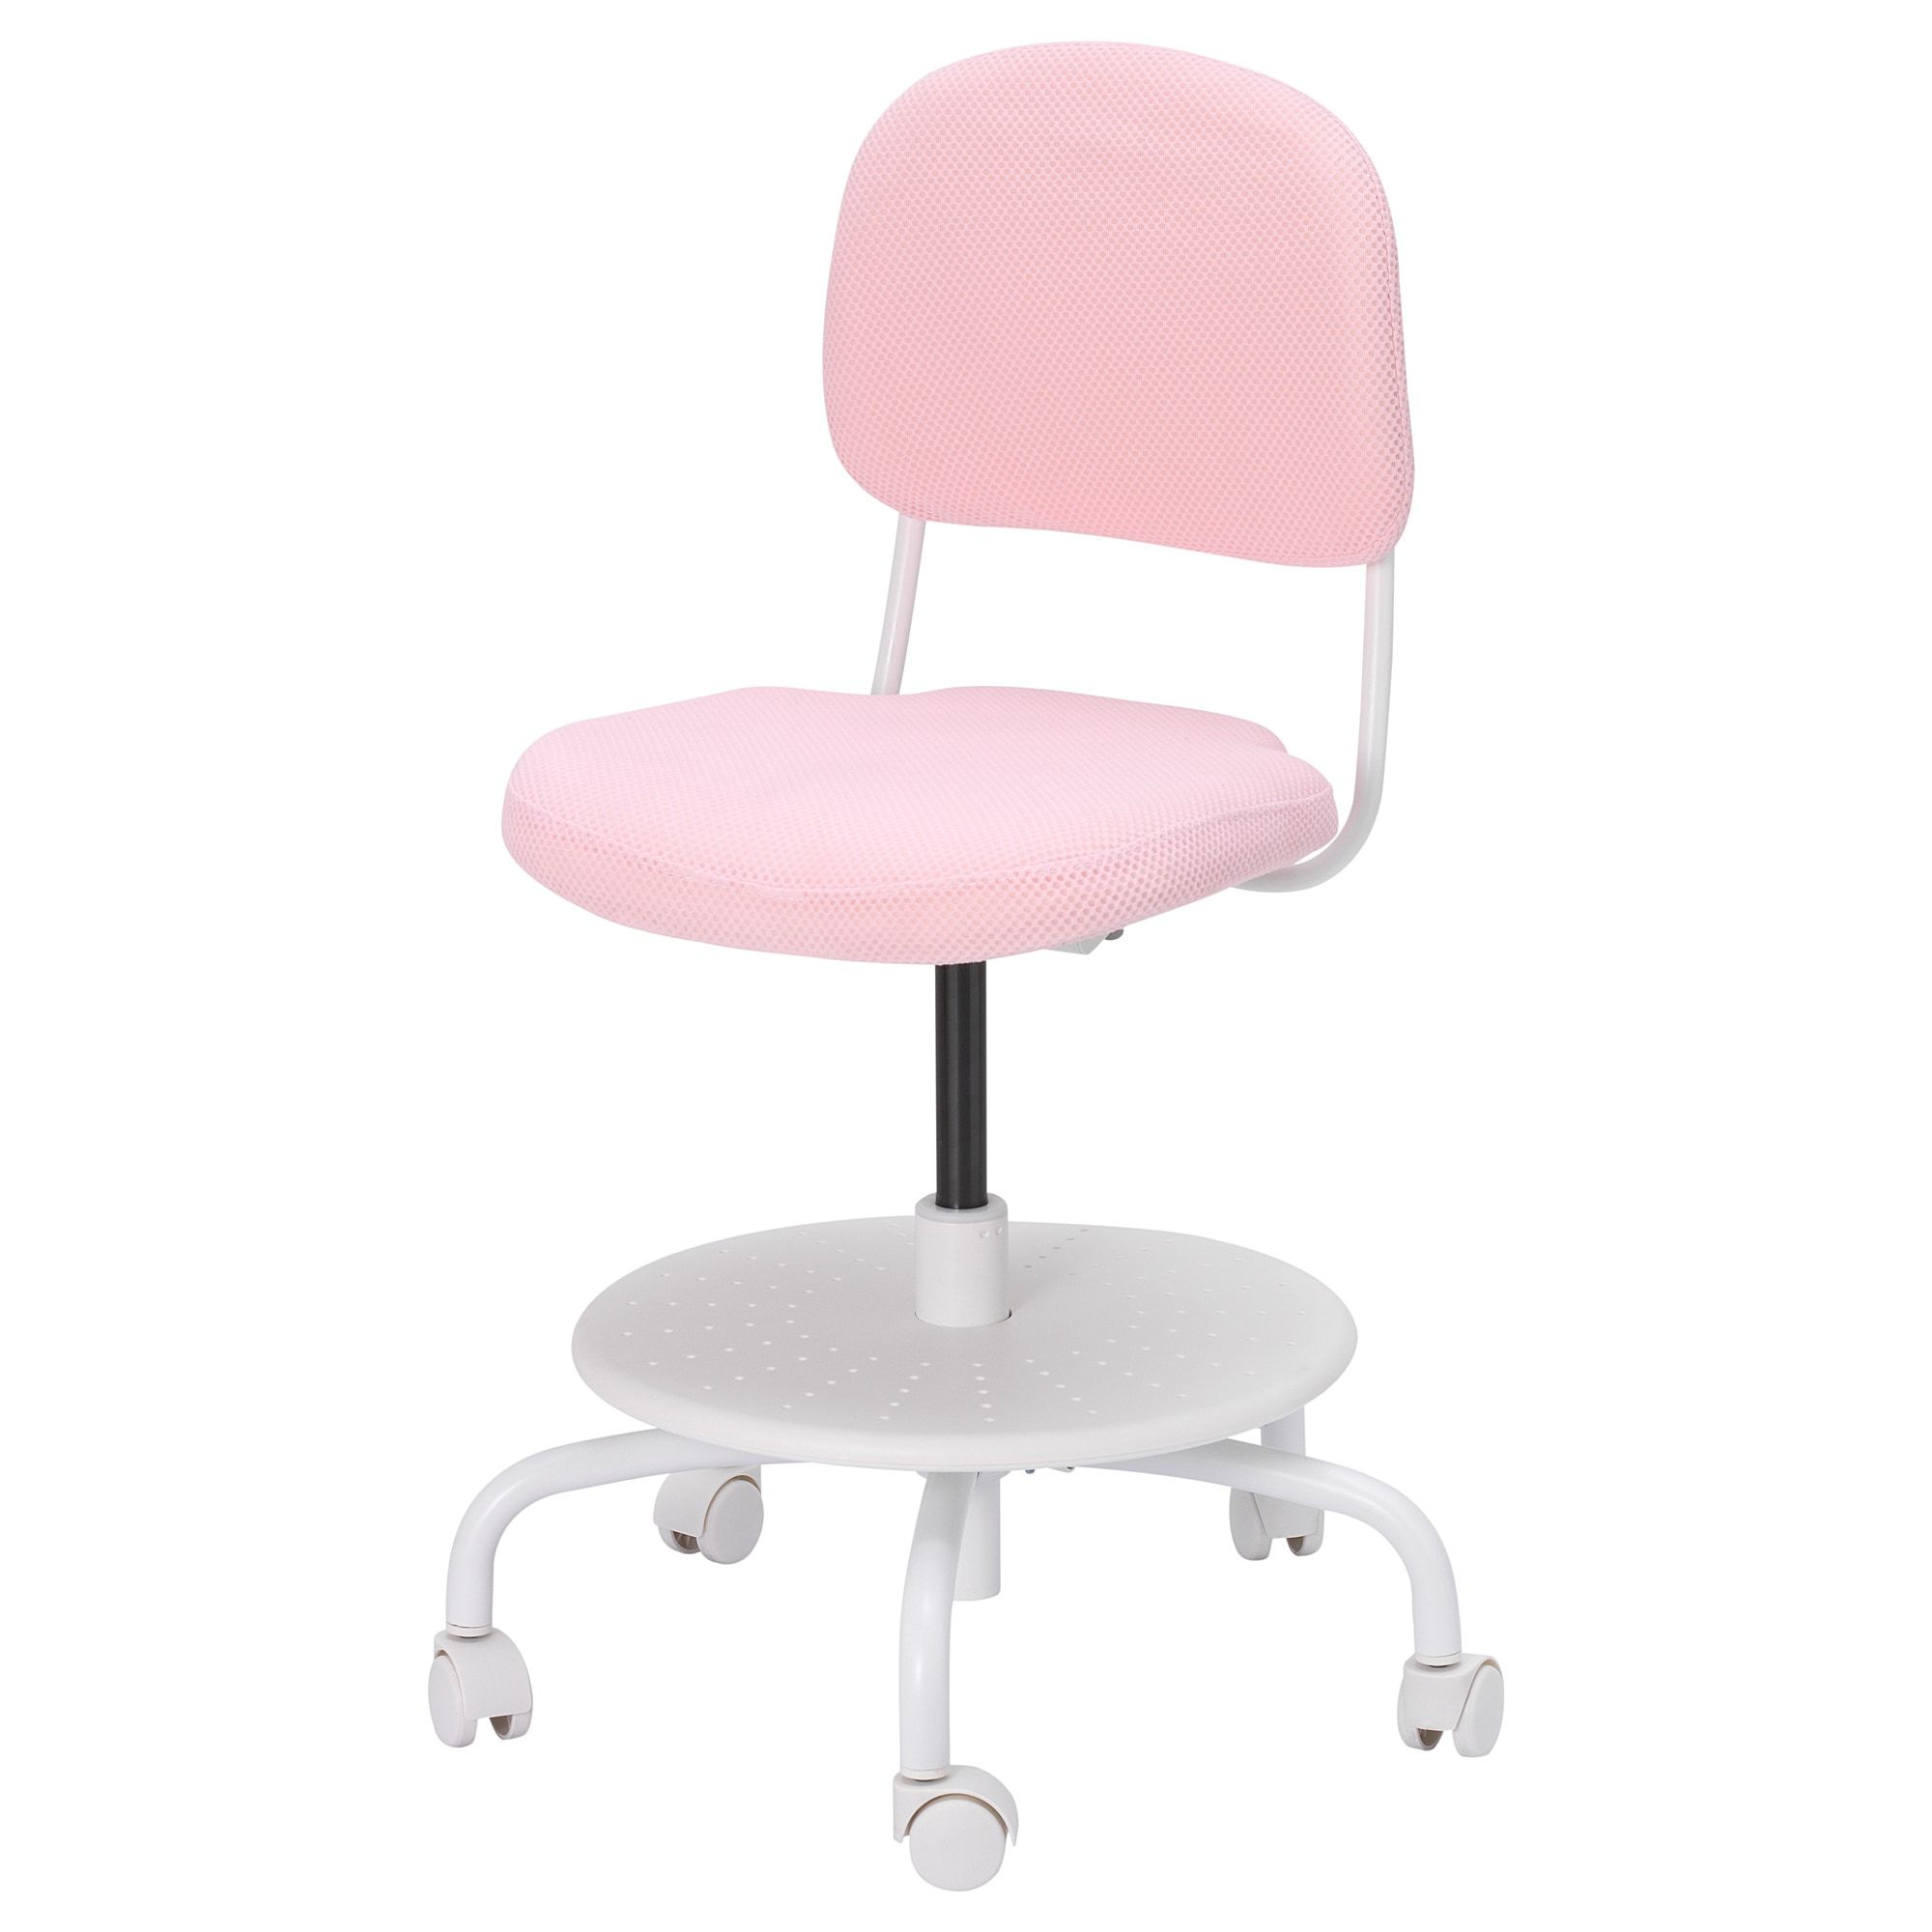 Vimund Child S Desk Chair Light Pink Ikea Desk Chair Childrens Desk And Chair Kid Desk